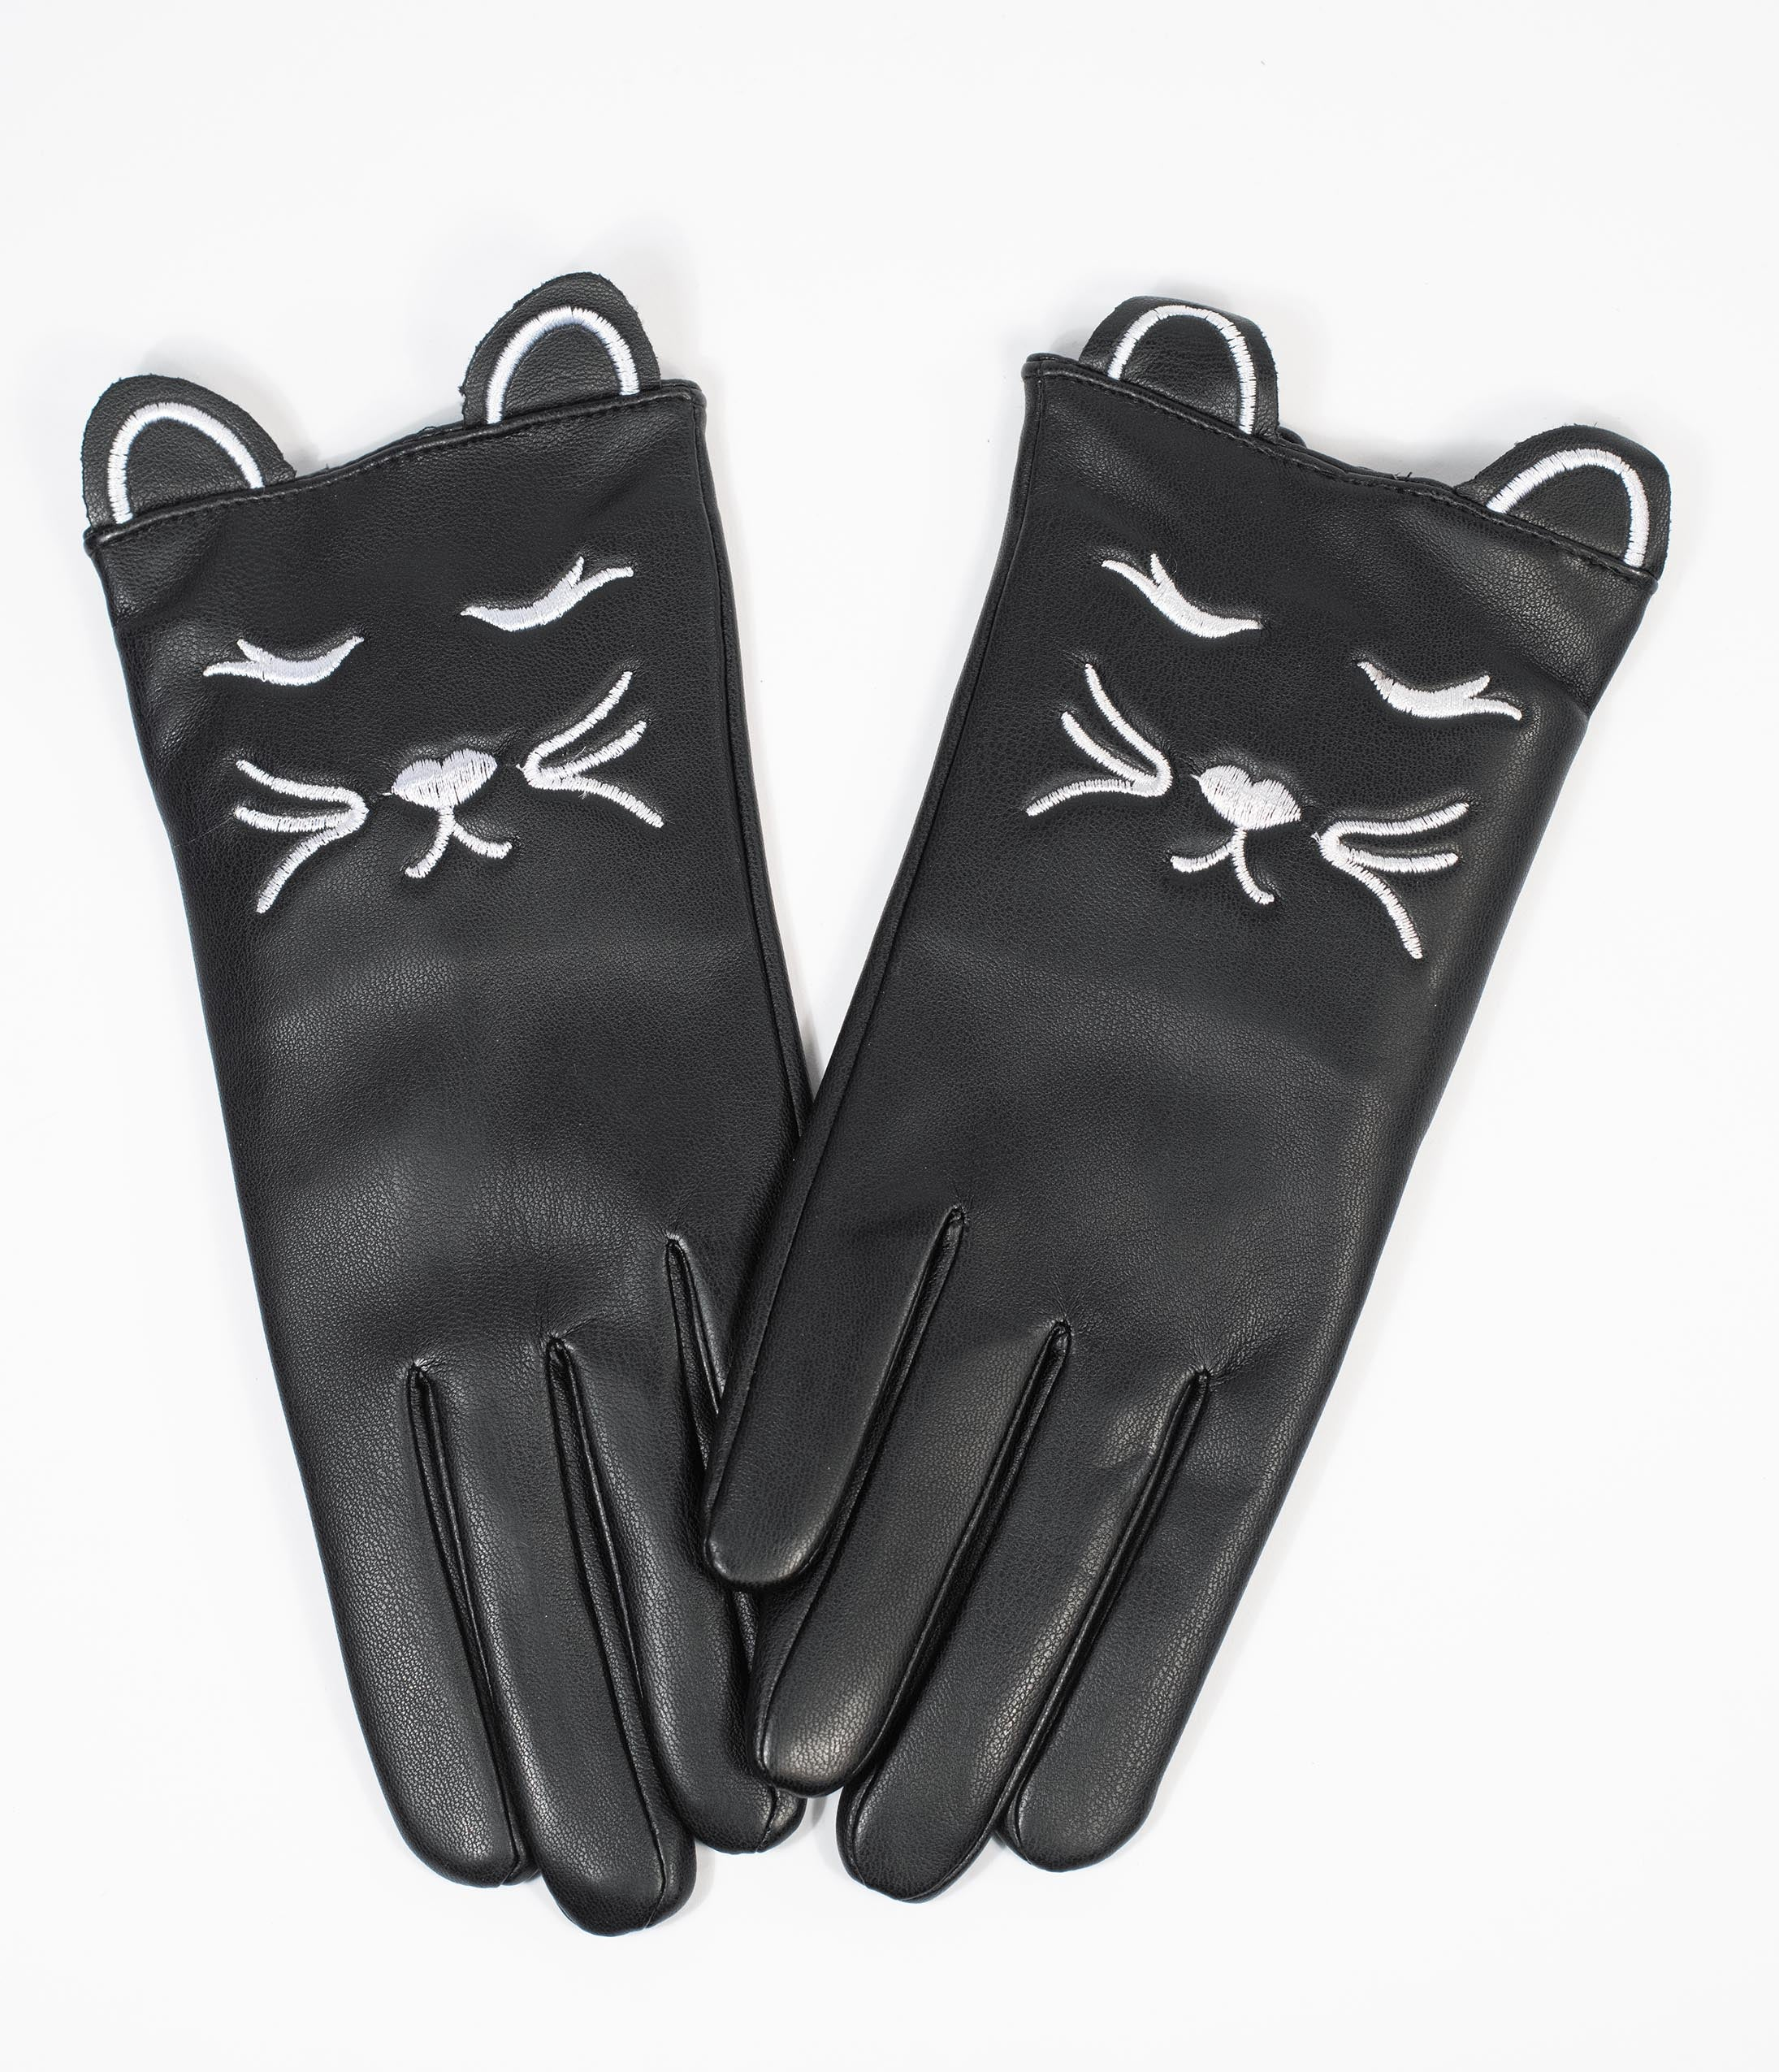 Vintage Gloves History- 1900, 1910, 1920, 1930 1940, 1950, 1960 Collectif Black Leatherette Cat Gloves $36.00 AT vintagedancer.com